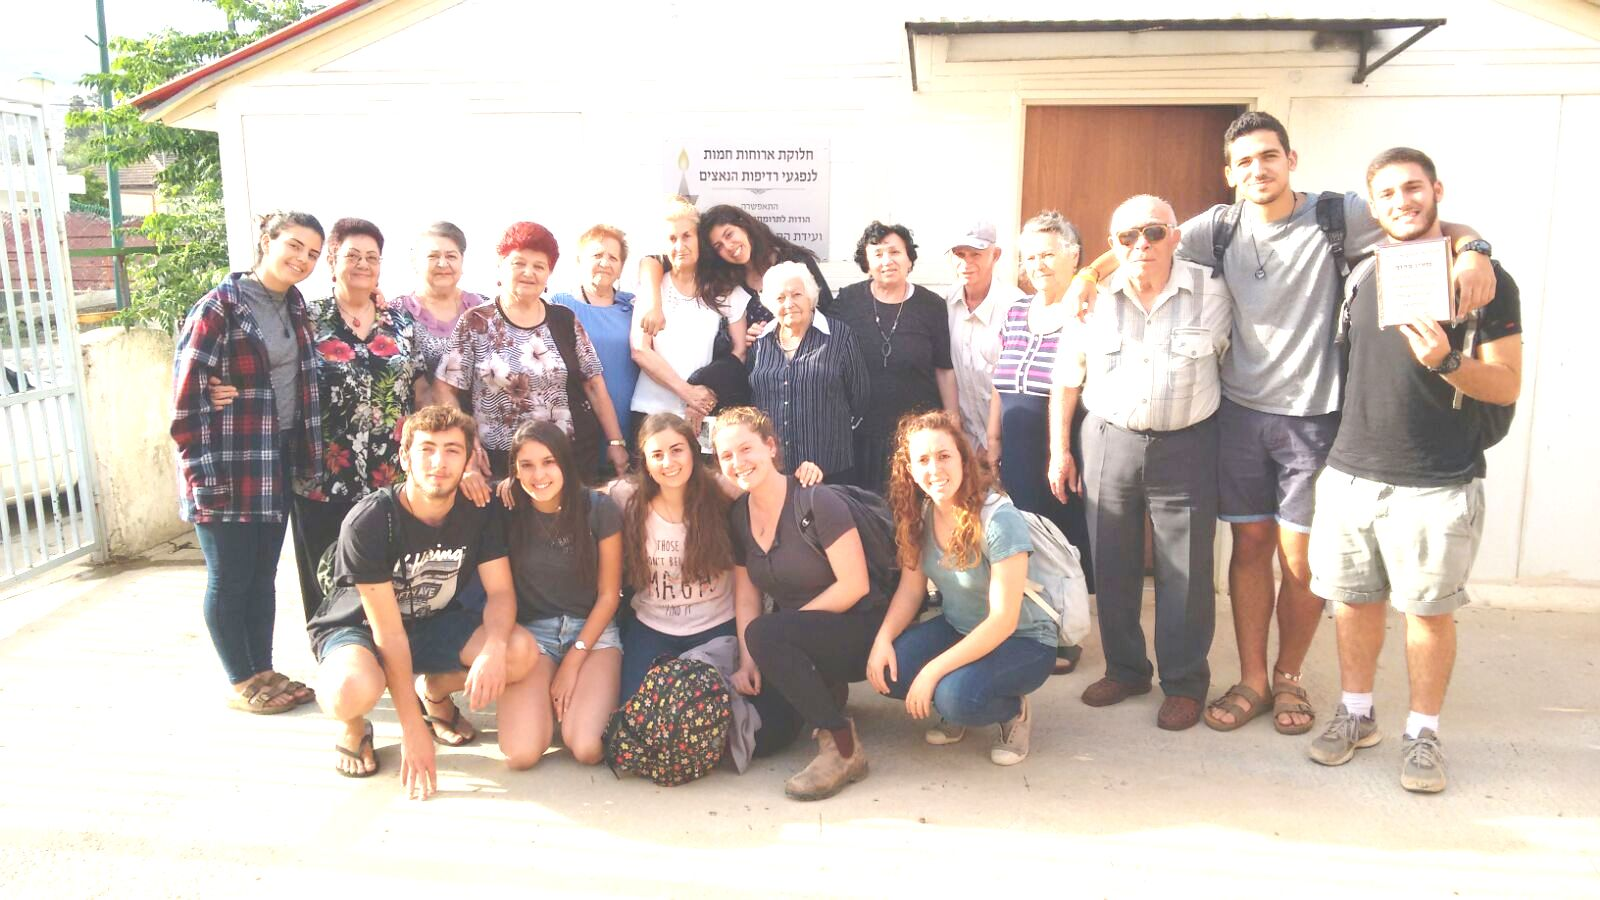 Winners in Kiryat Shmona and students of M.Baruch